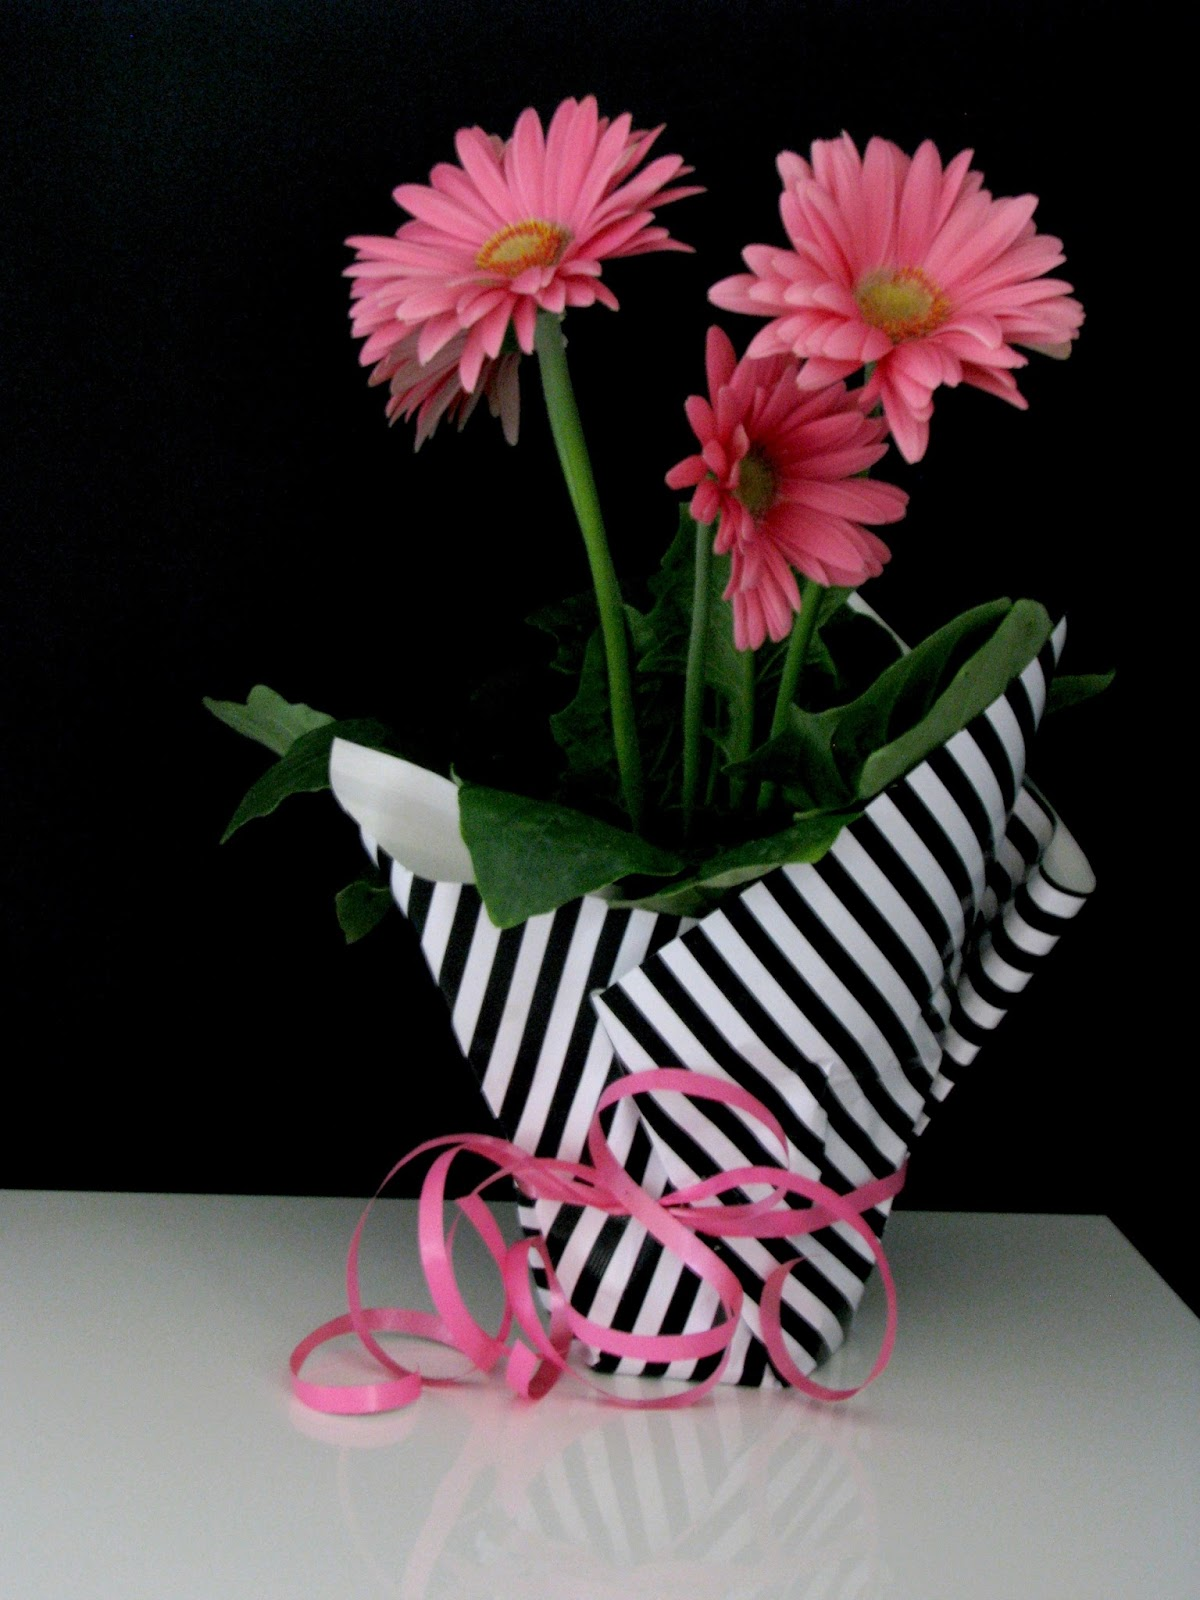 Life love larson wrapped flower i decided to keep the plant in the original pot and dress up the outside using striped wrapping paper homegoods and a little curling ribbon ikea mightylinksfo